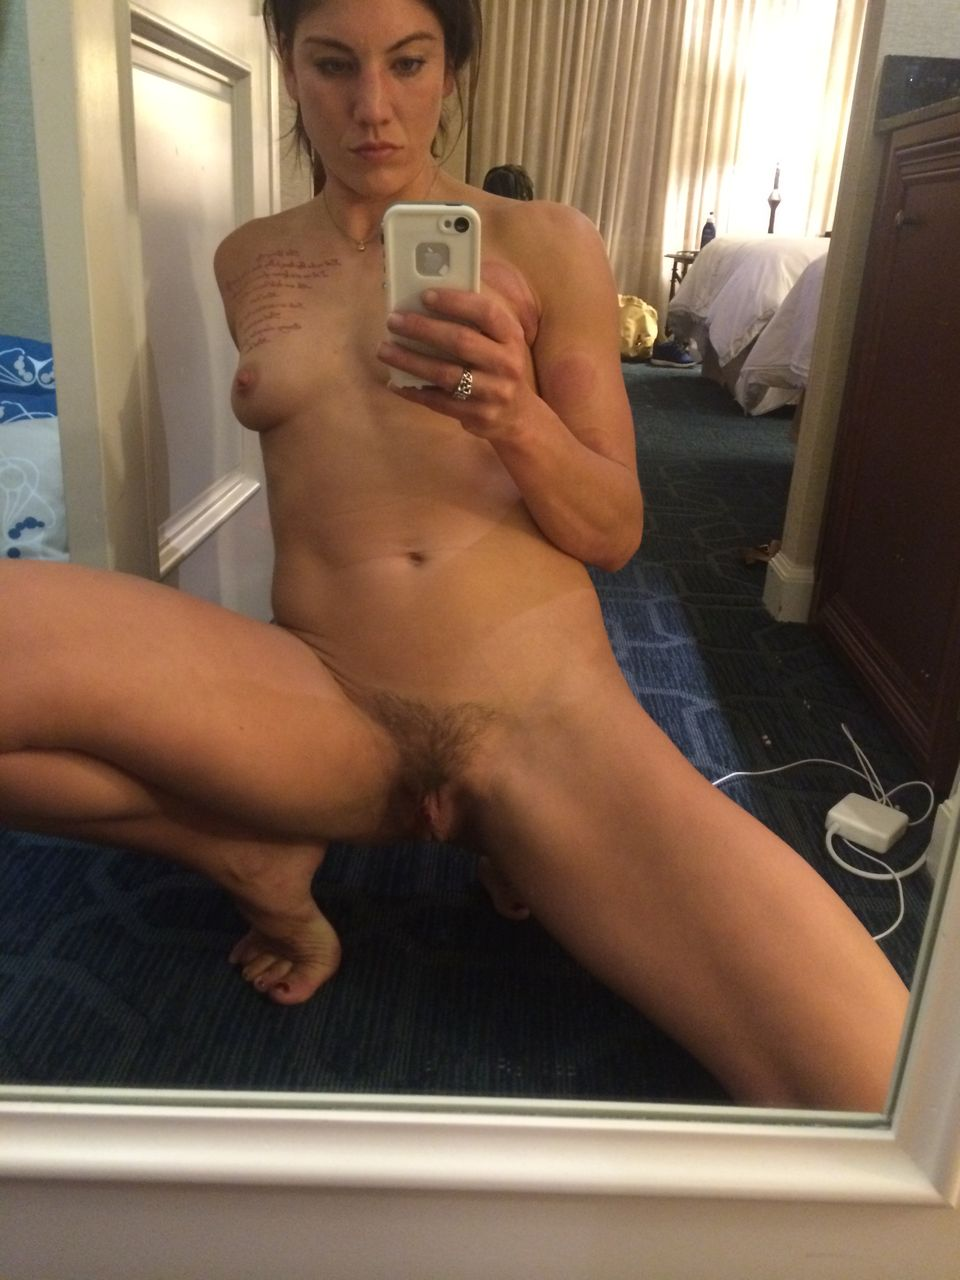 Wife naked american athletes nude picture